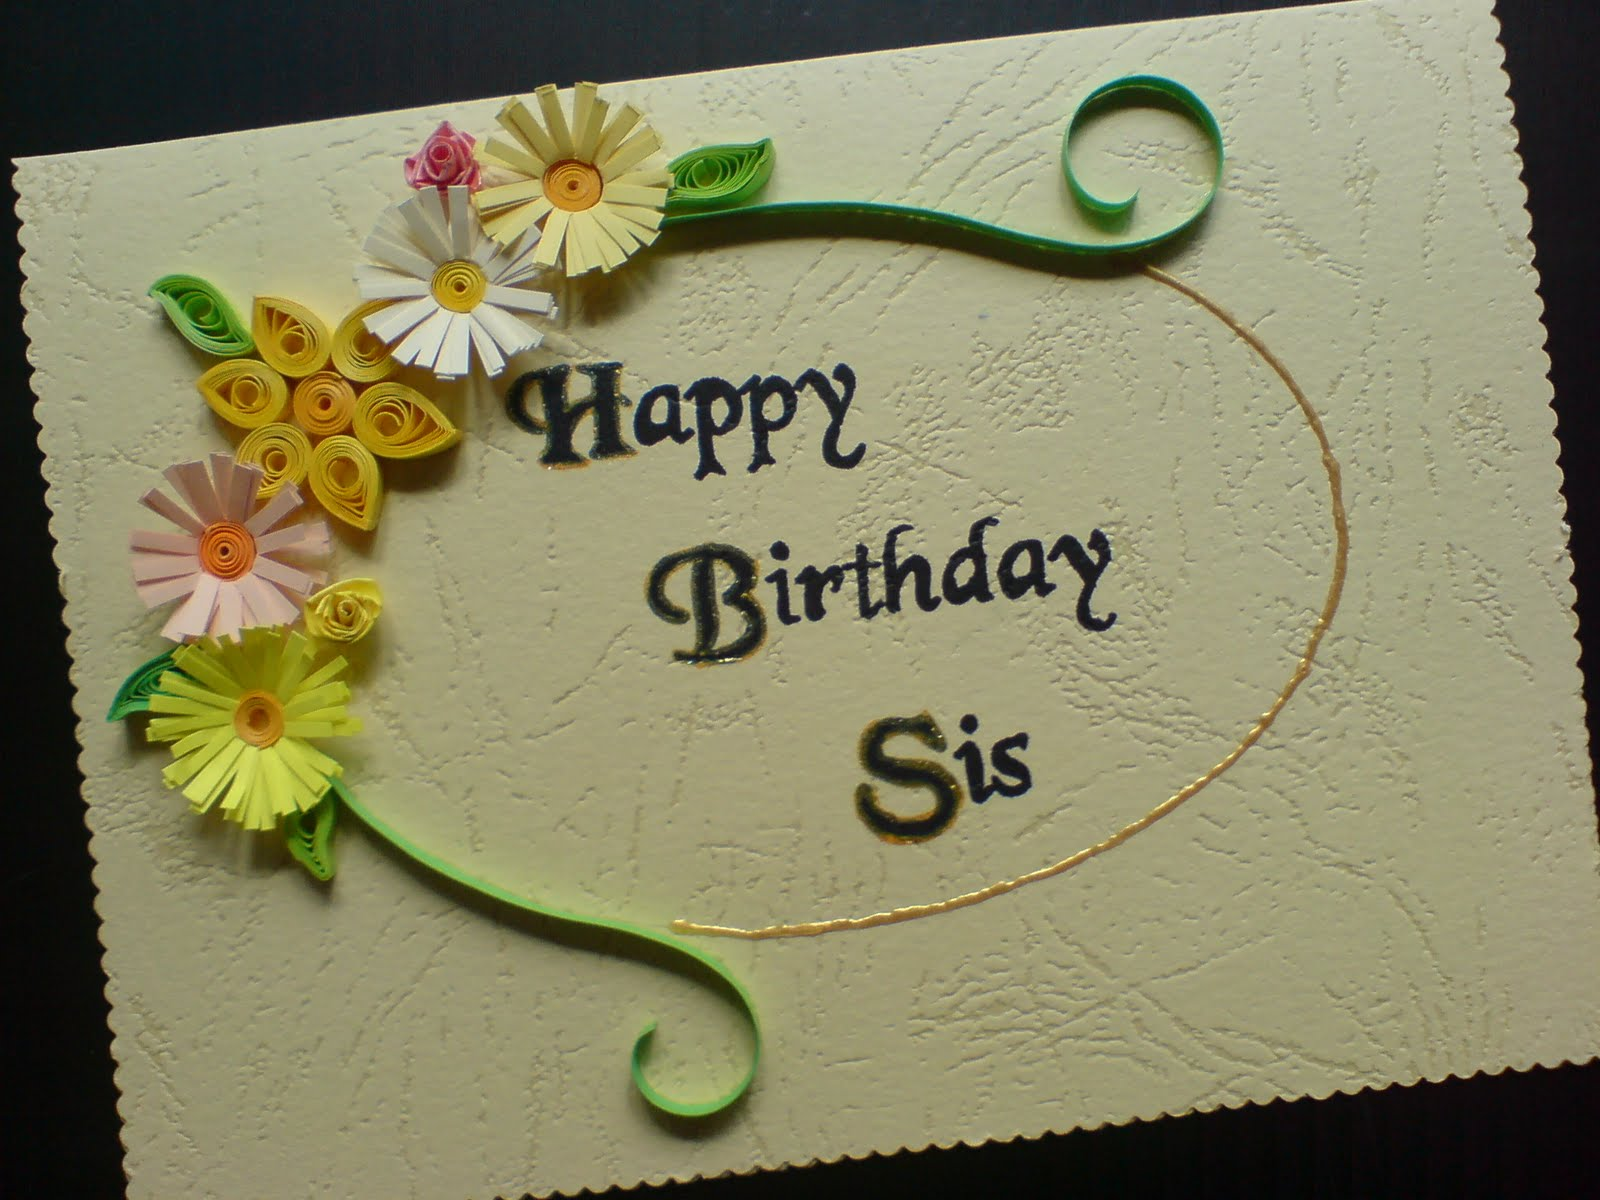 Happy birthday sister quotes images and messages